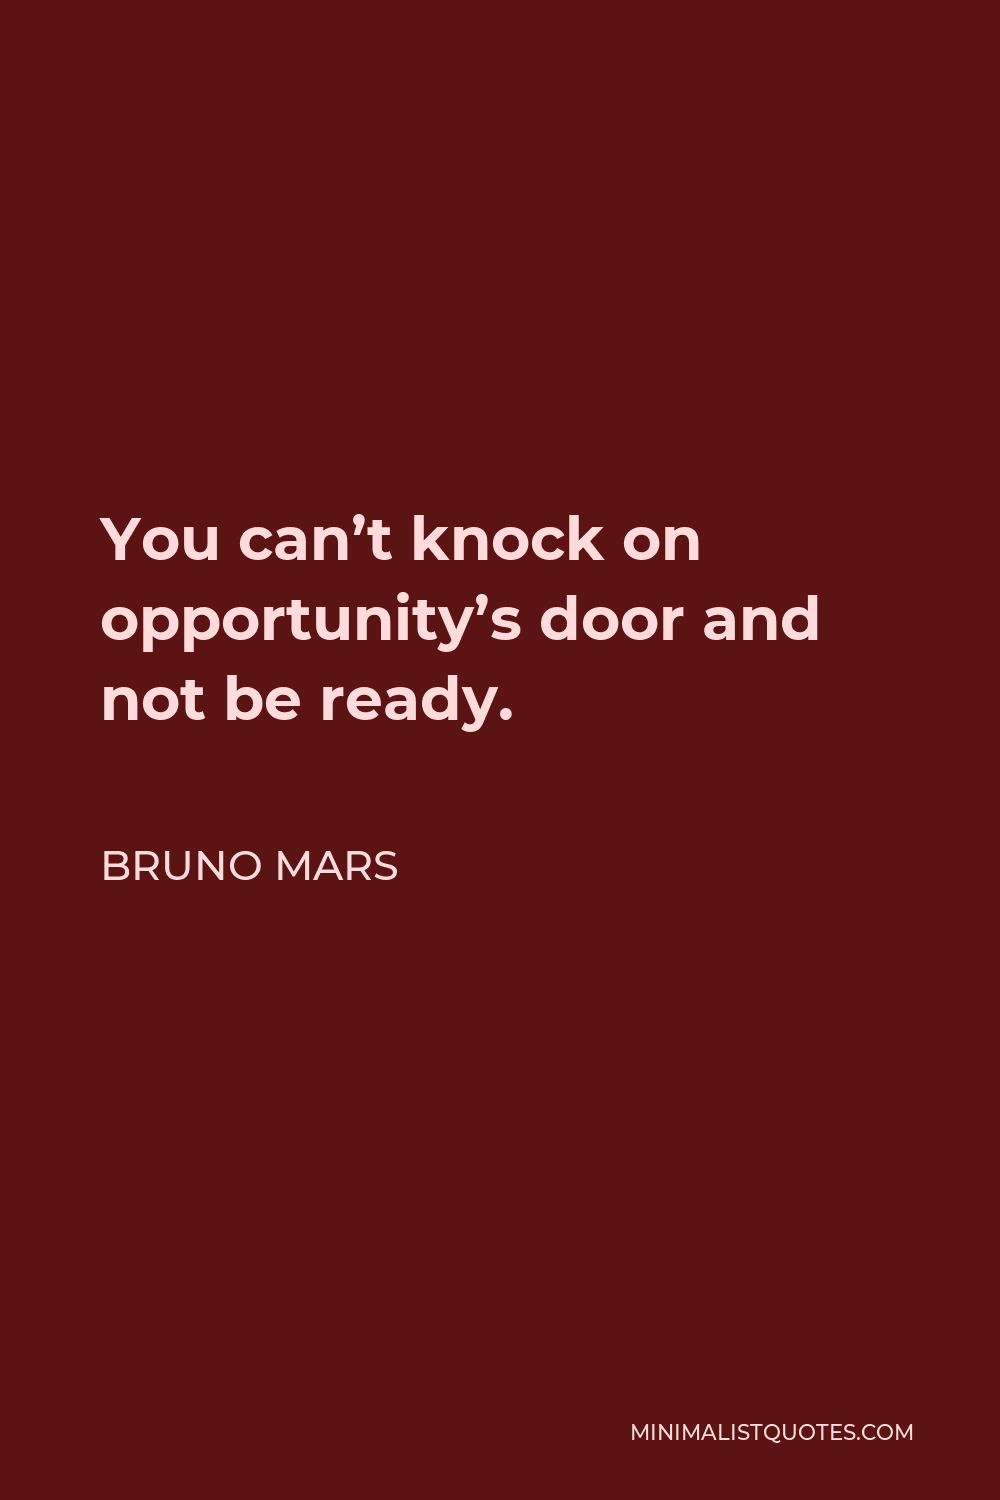 Bruno Mars Quote - You can't knock on opportunity's door and not be ready.